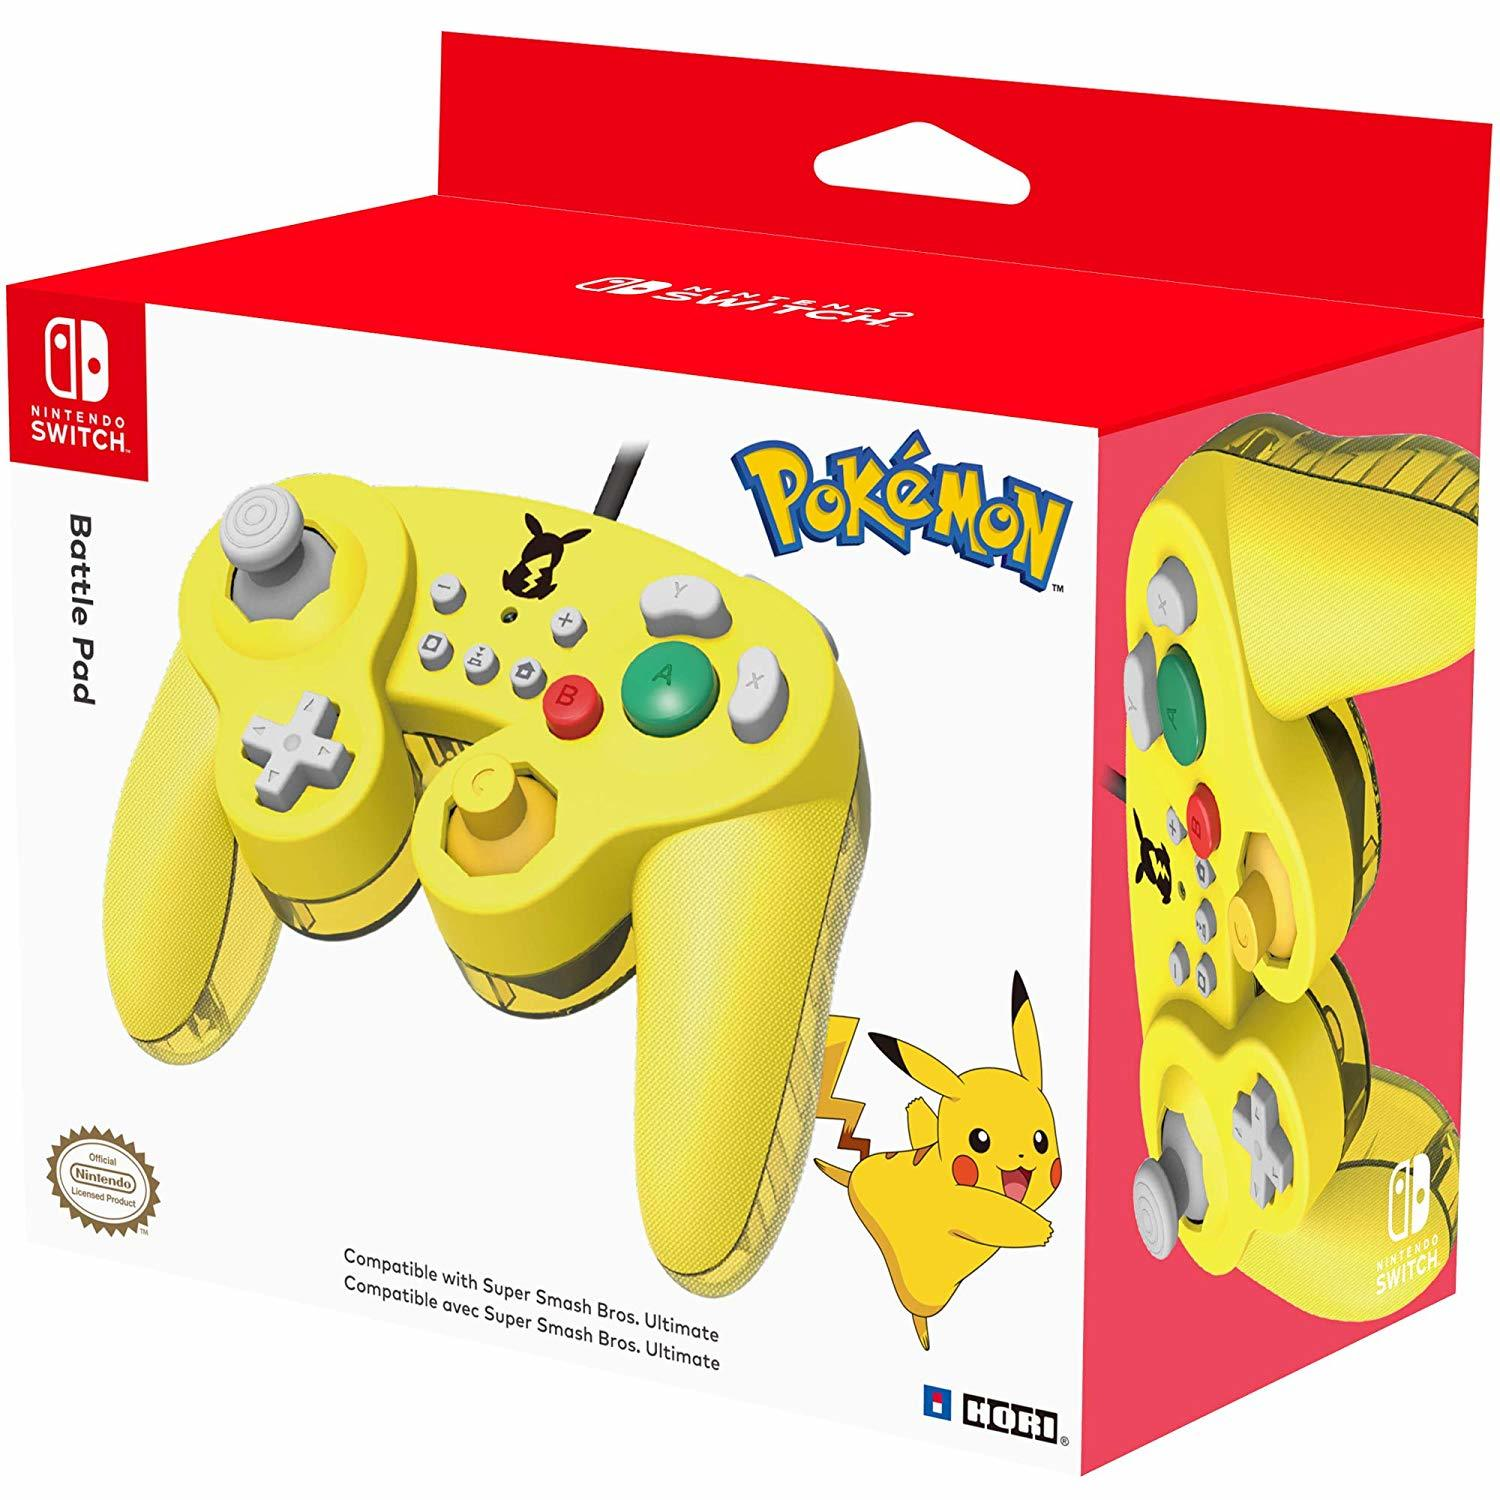 Nintendo GameCube Controller Super Smash Bros Edition (Pikachu) - Nintendo Switch